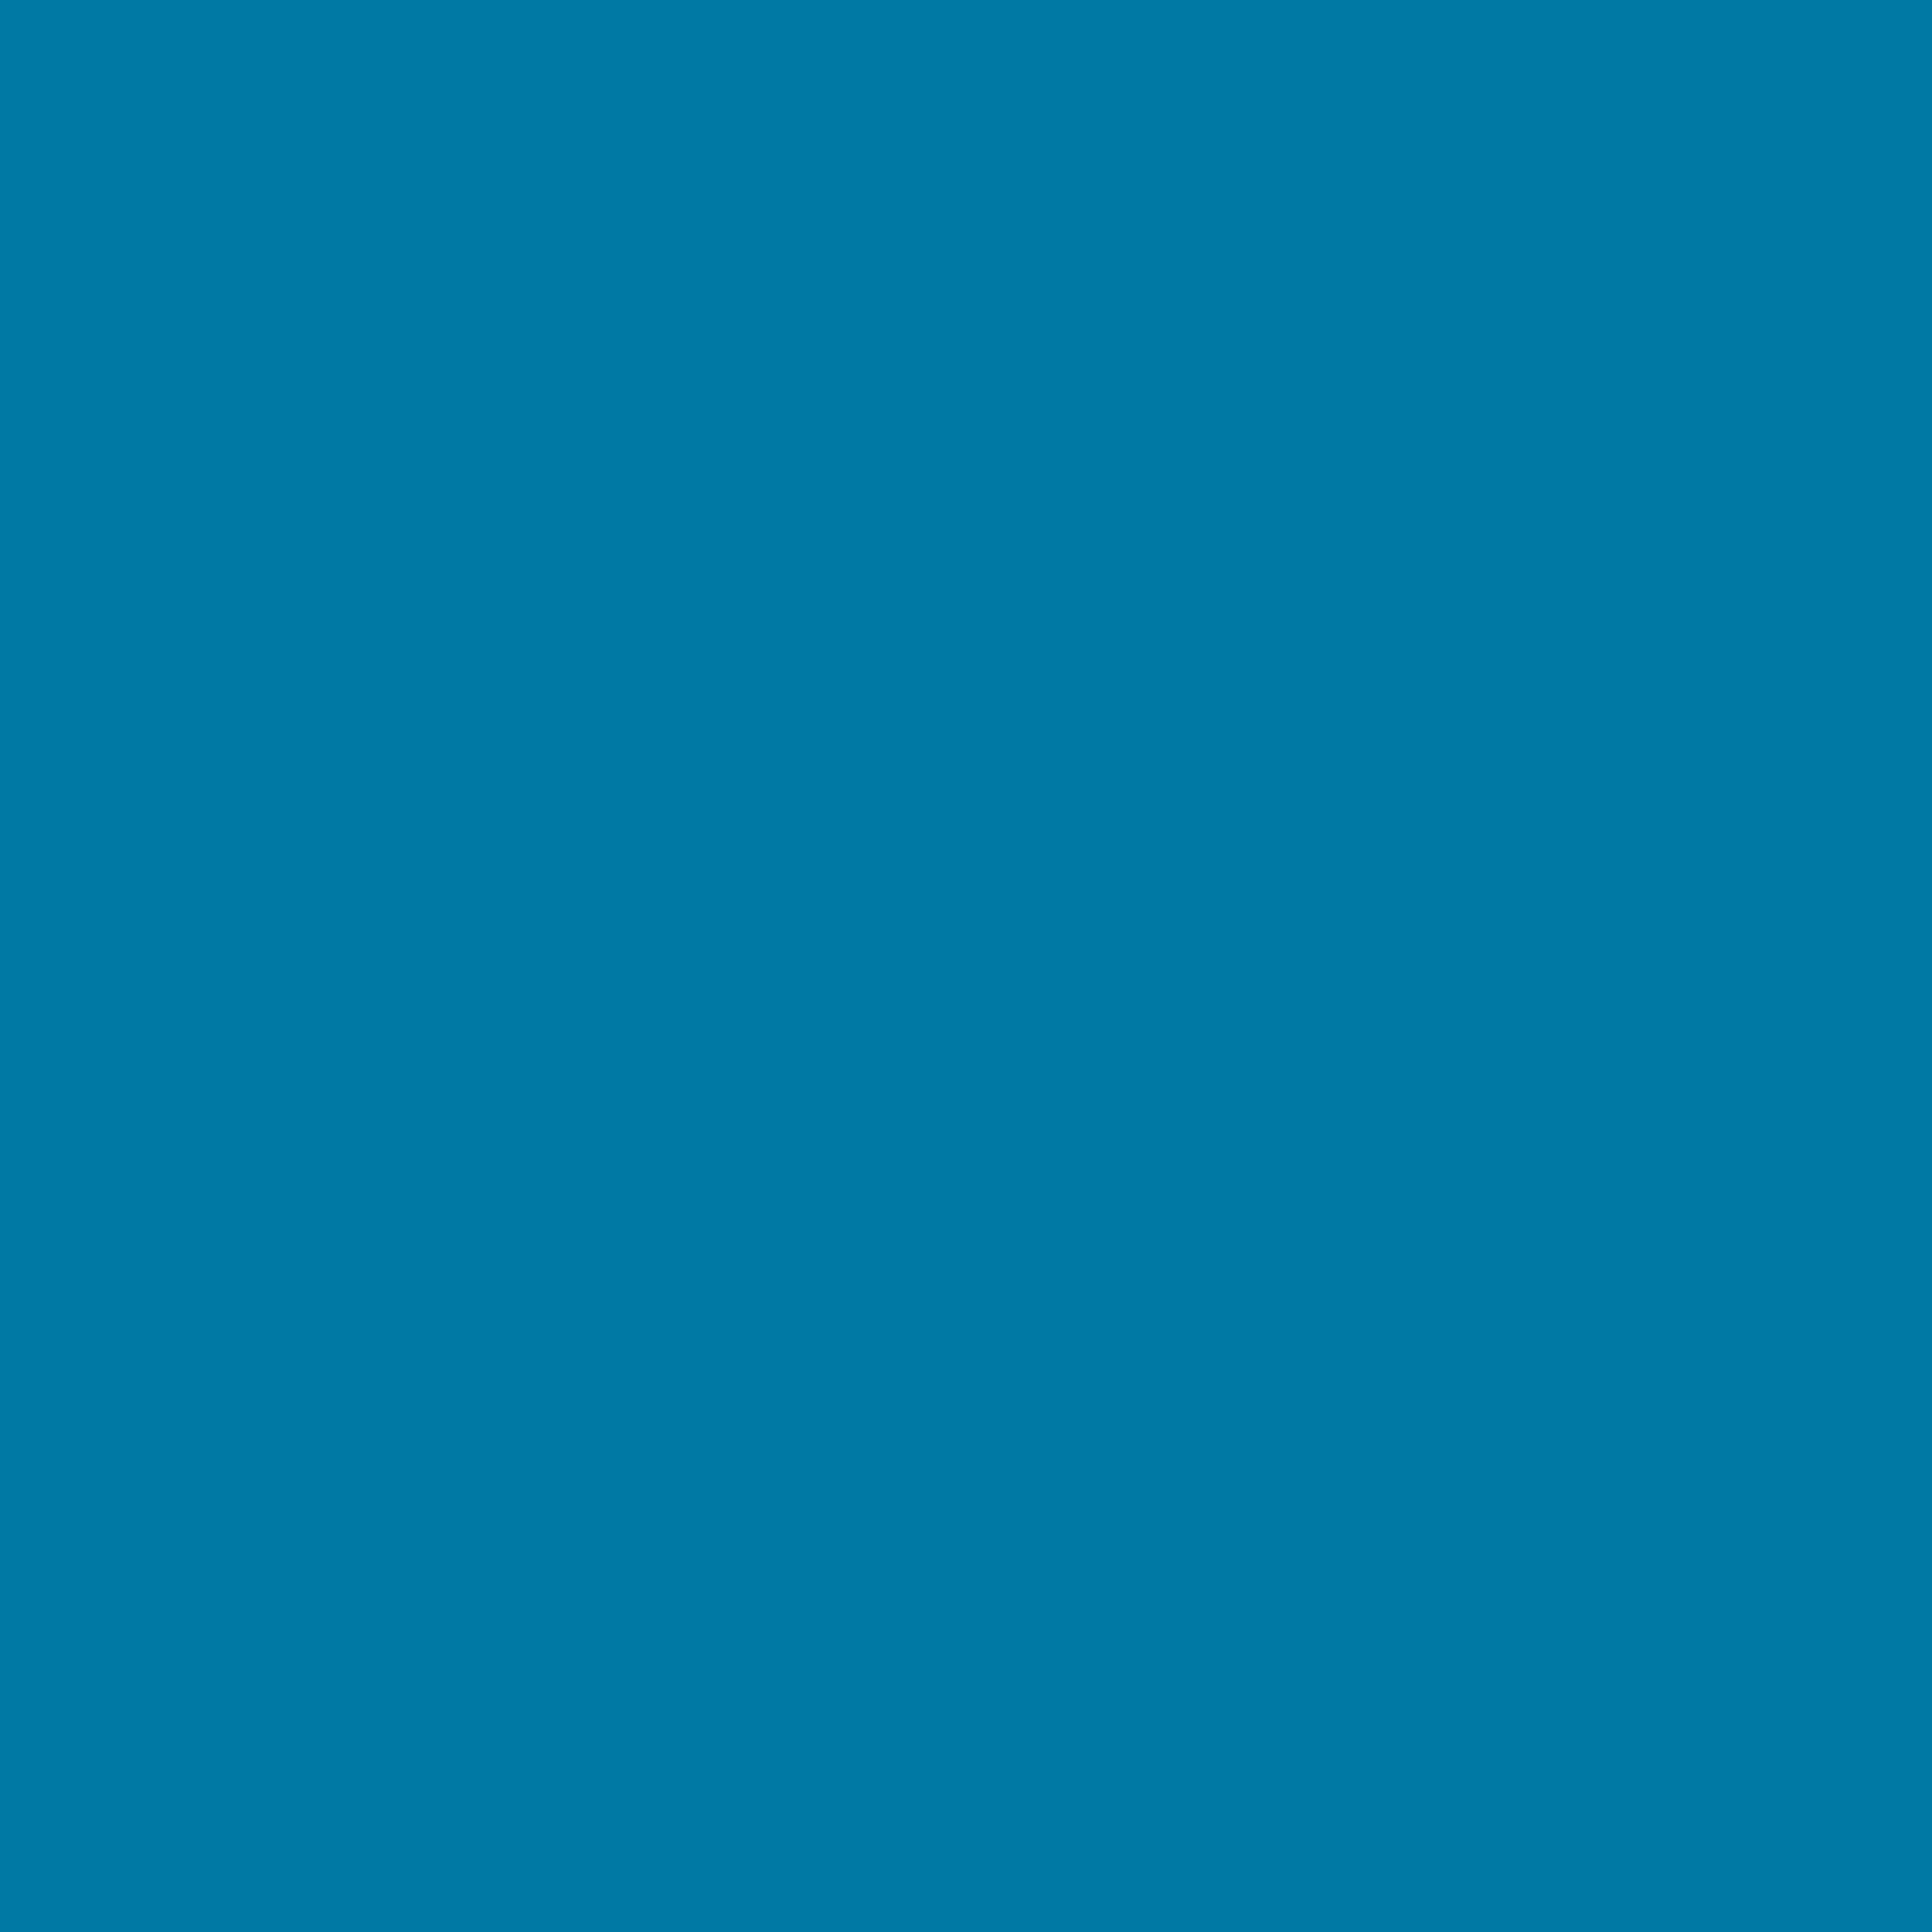 2732x2732 CG Blue Solid Color Background